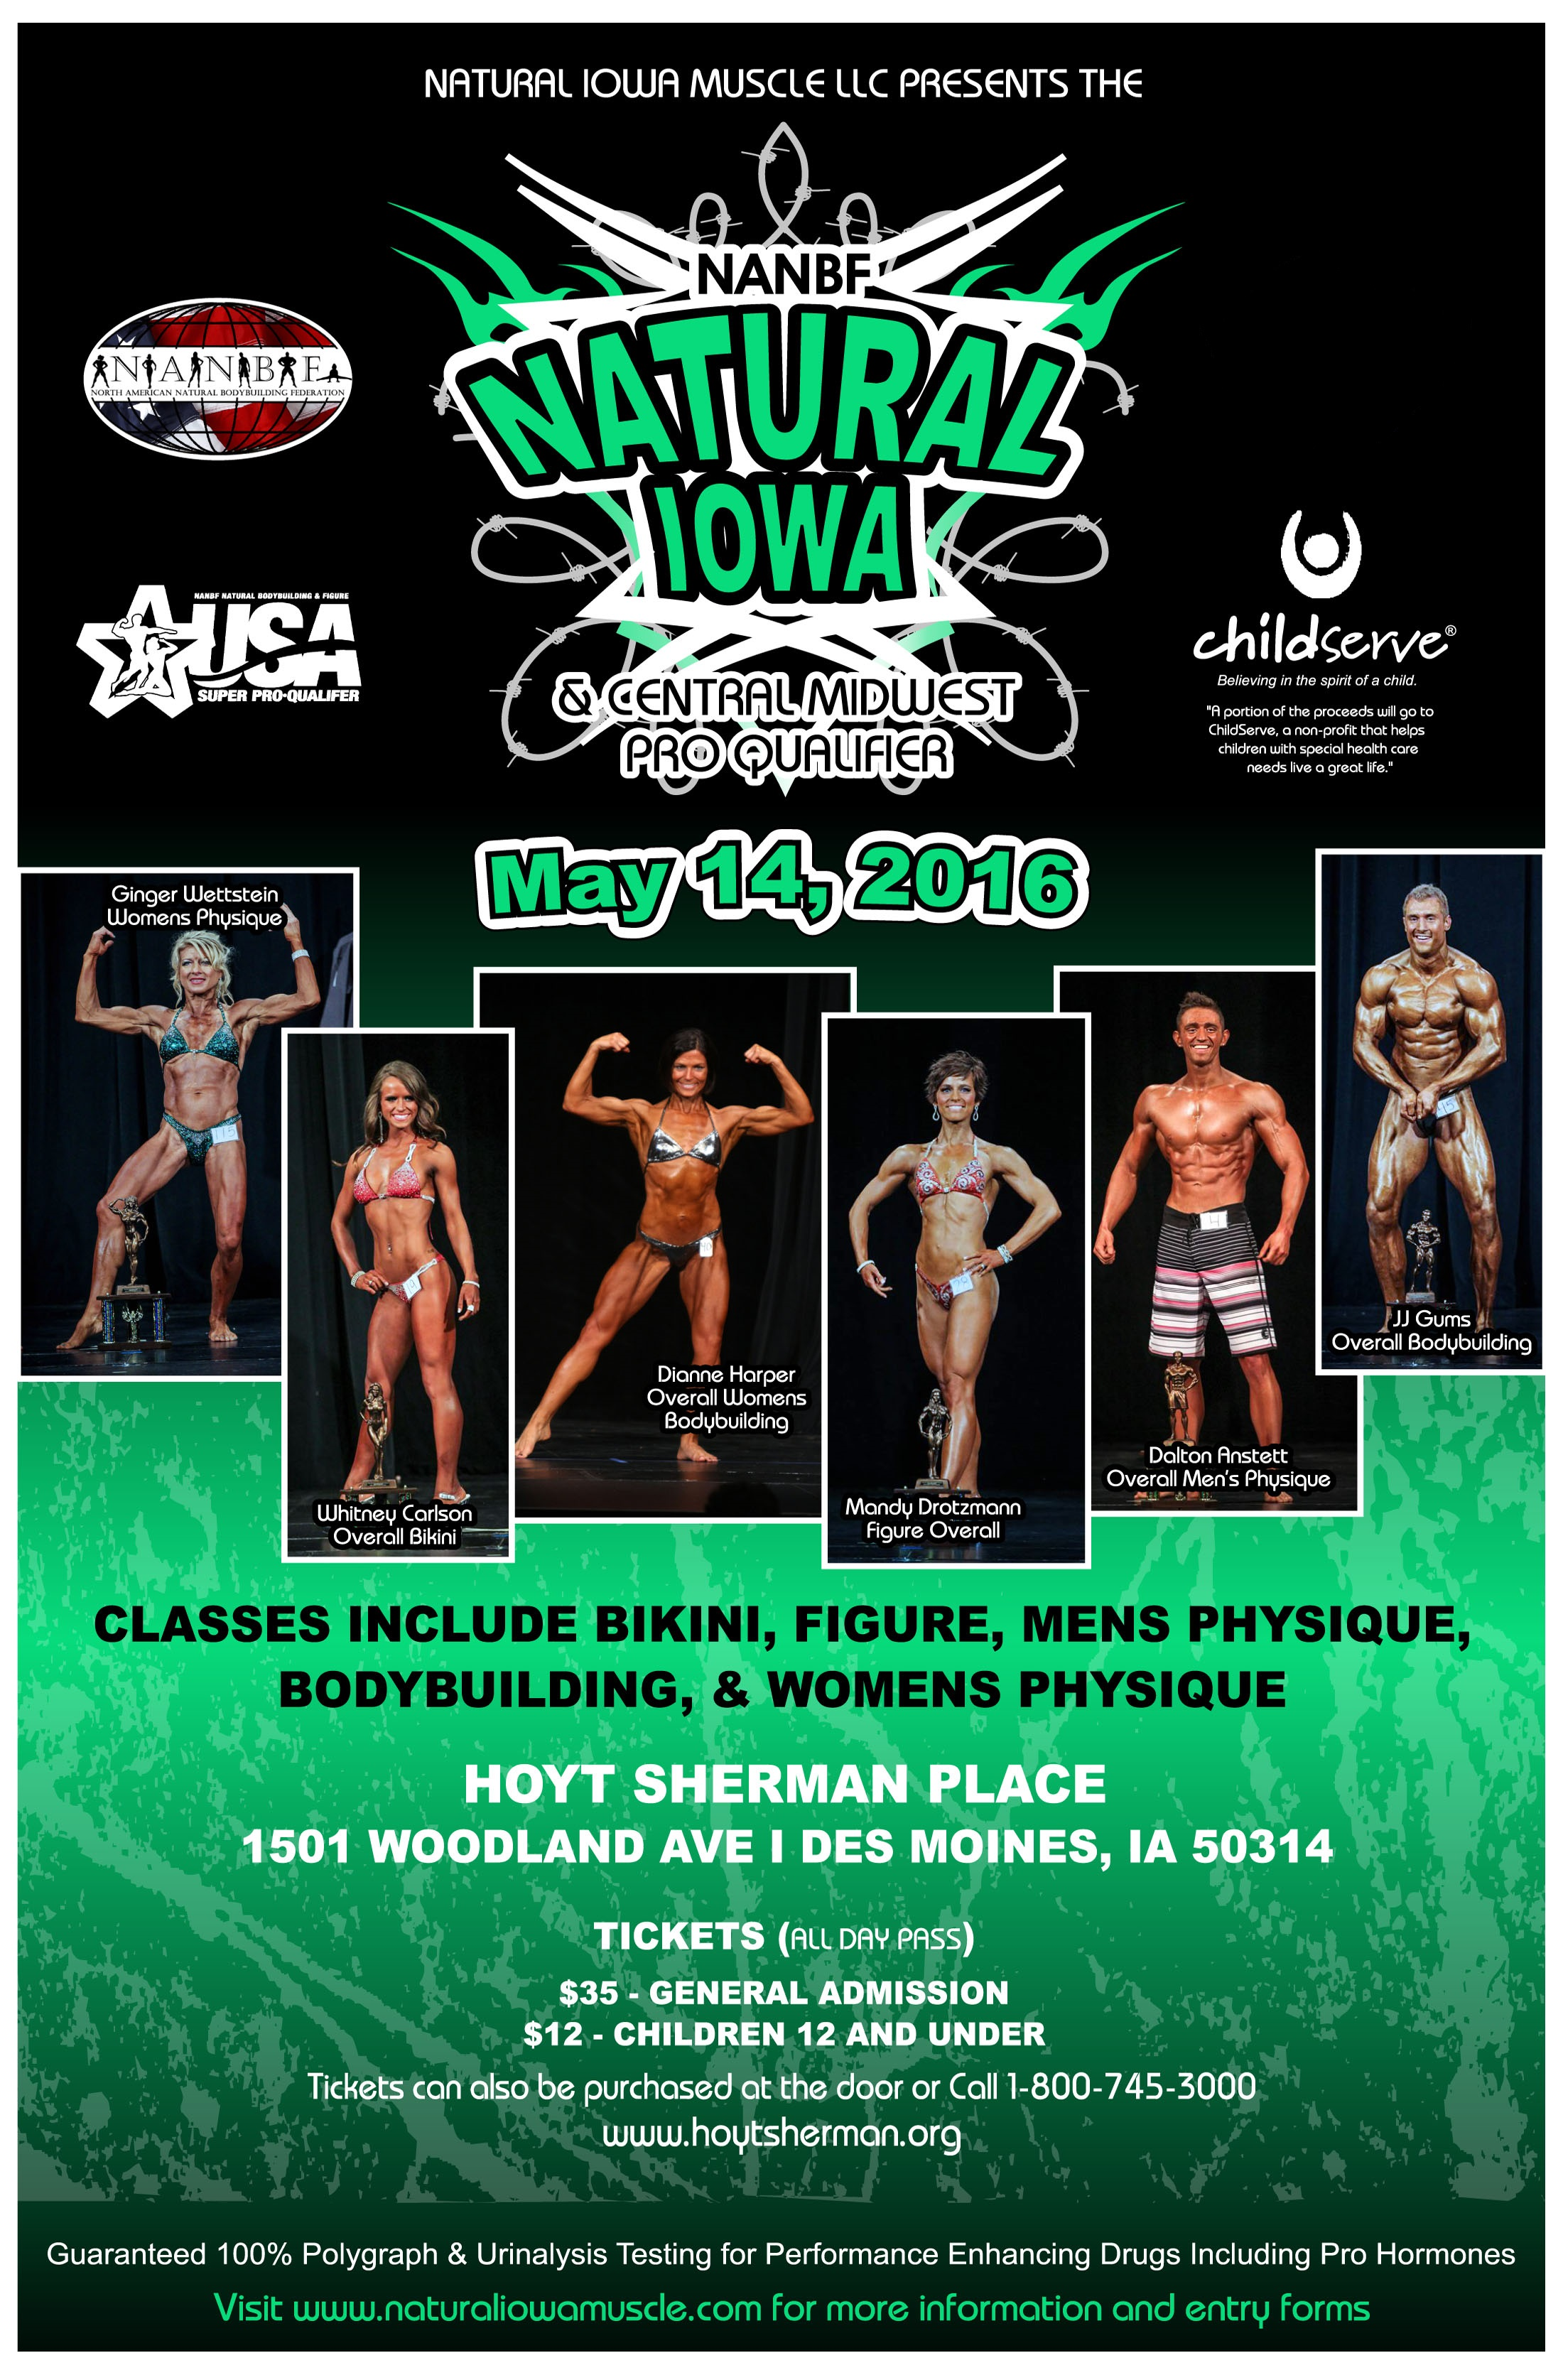 Information for the 2016 NANBF Natural Iowa!!